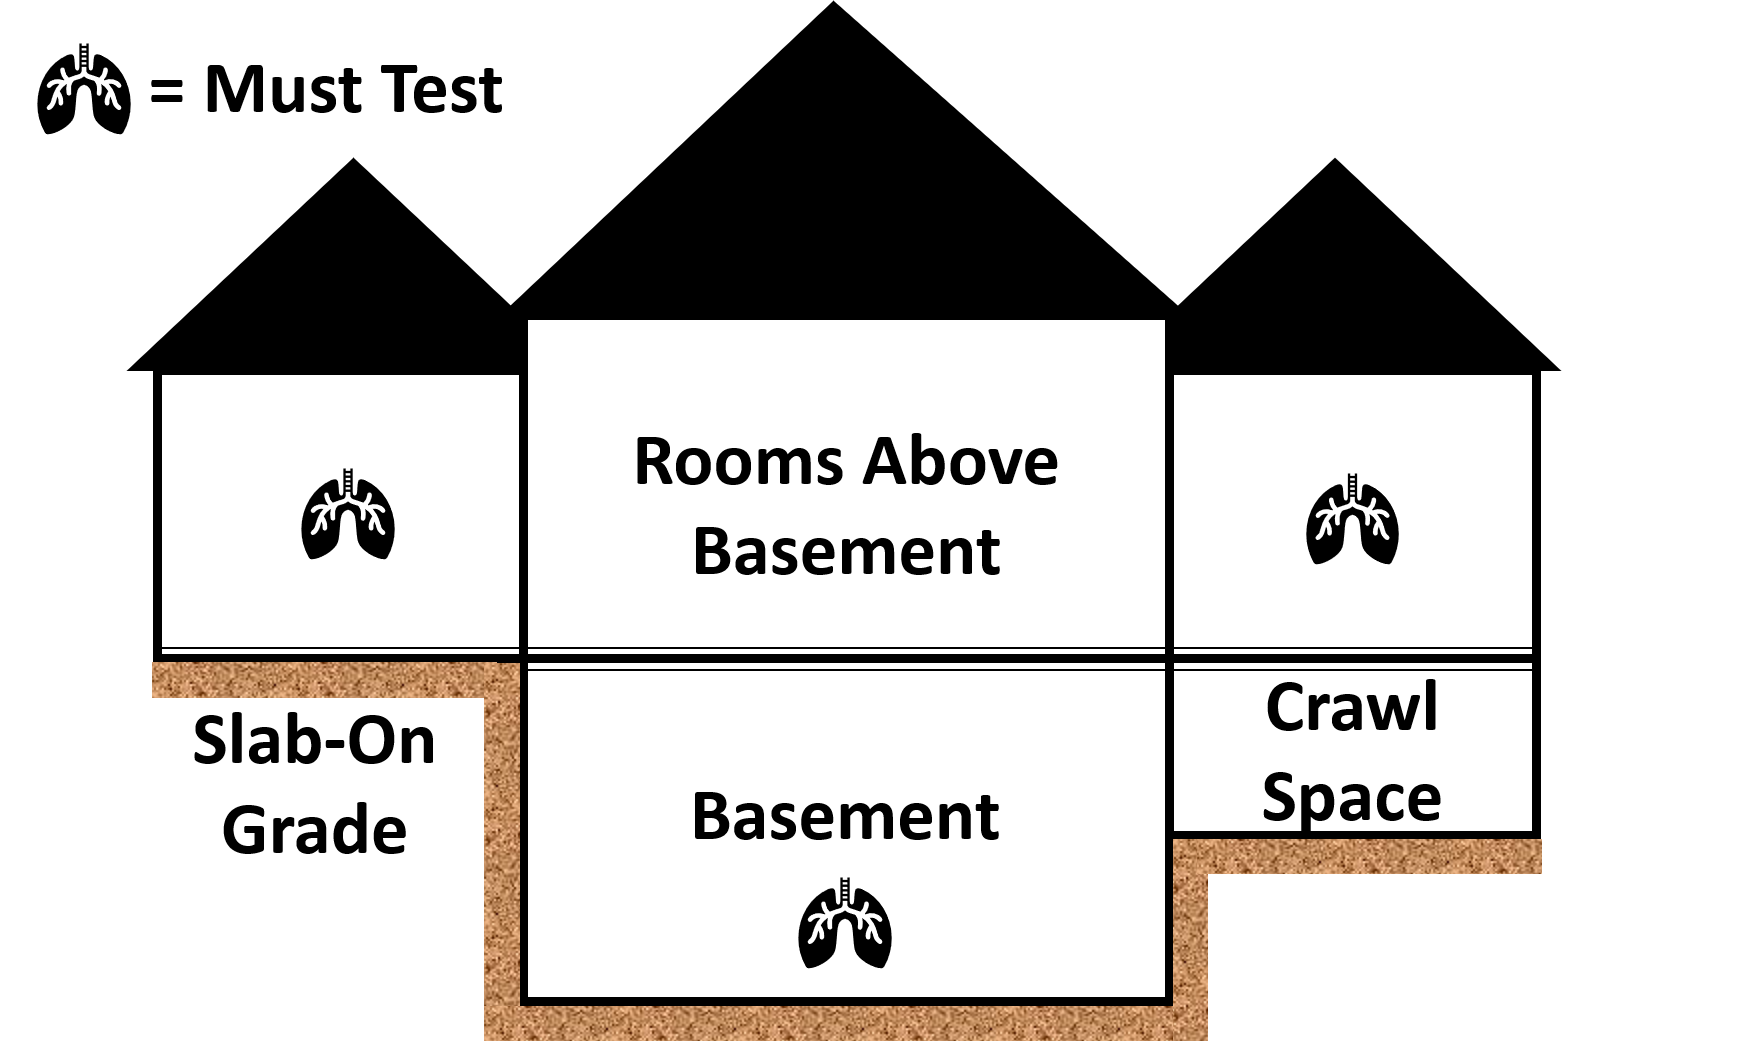 Image showing which areas of a home should be tested for radon